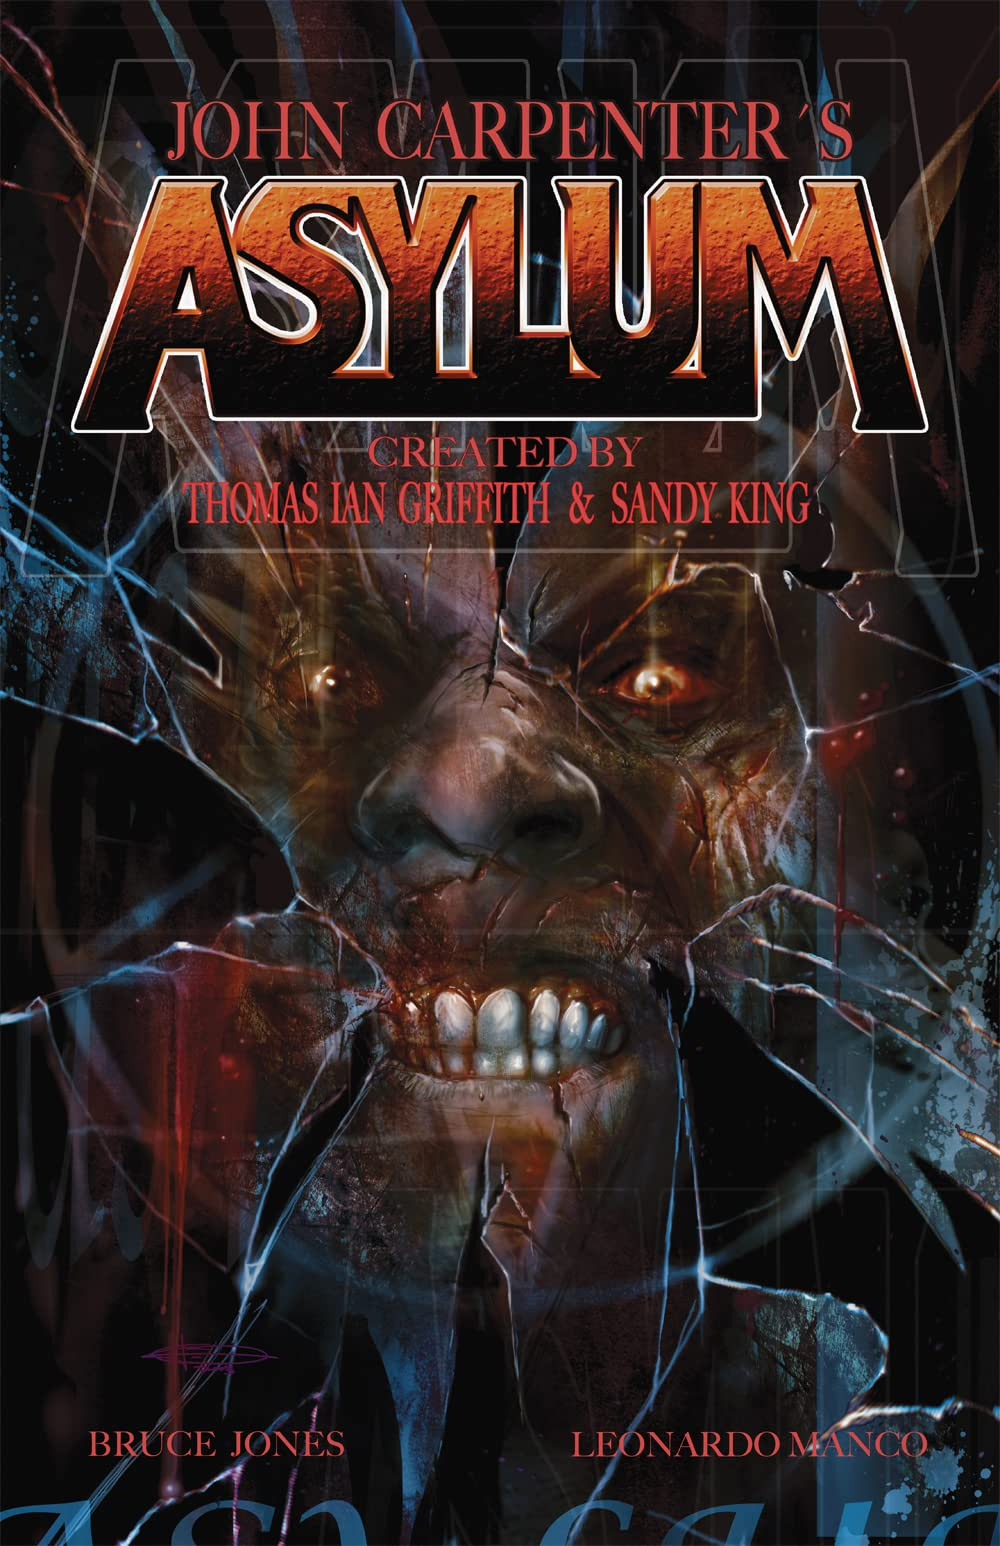 John Carpenter's Asylum #1